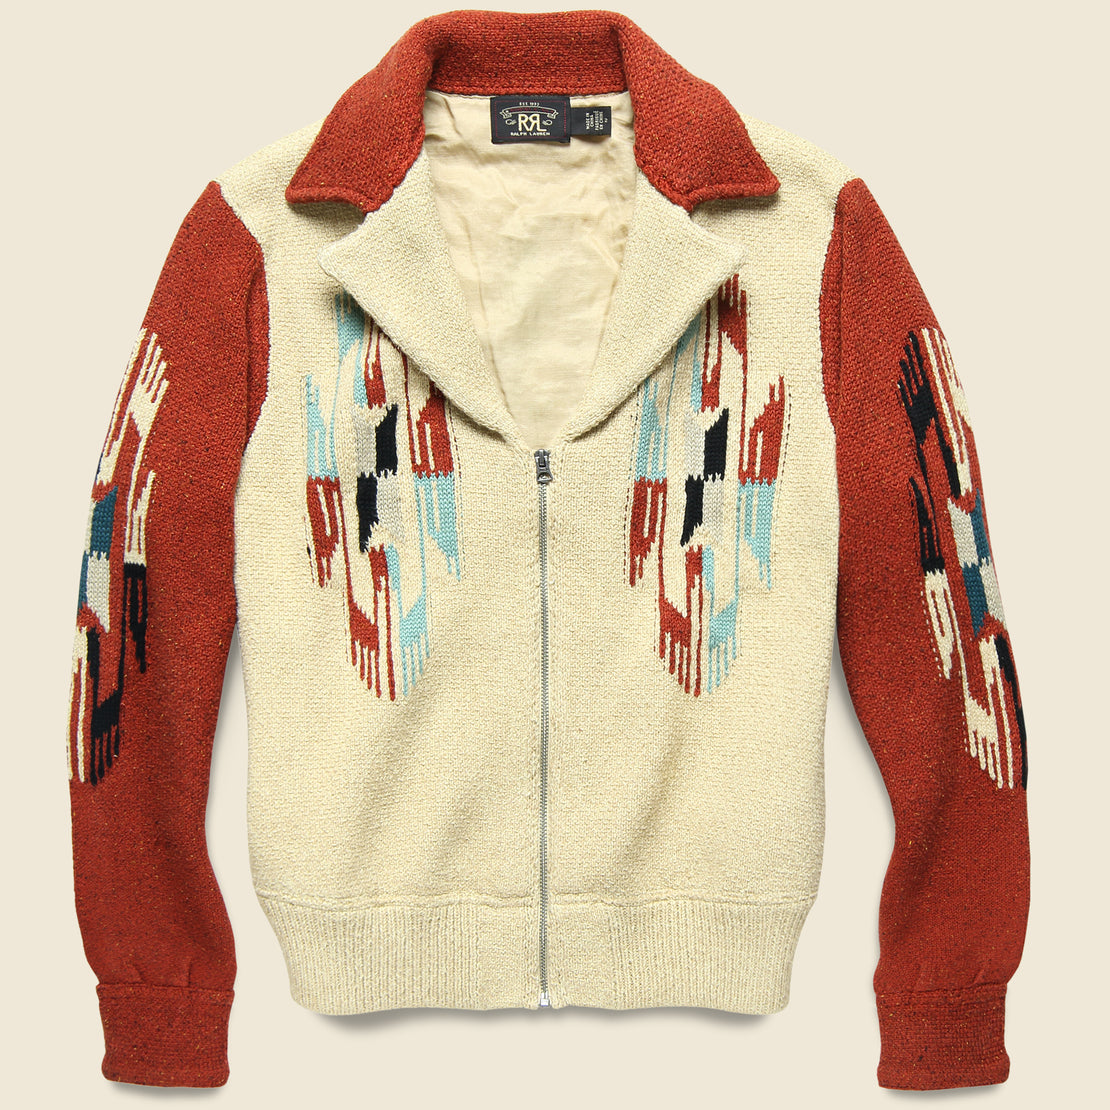 RRL Chimayo Sweater Jacket - Rust/Cream/Sky Blue